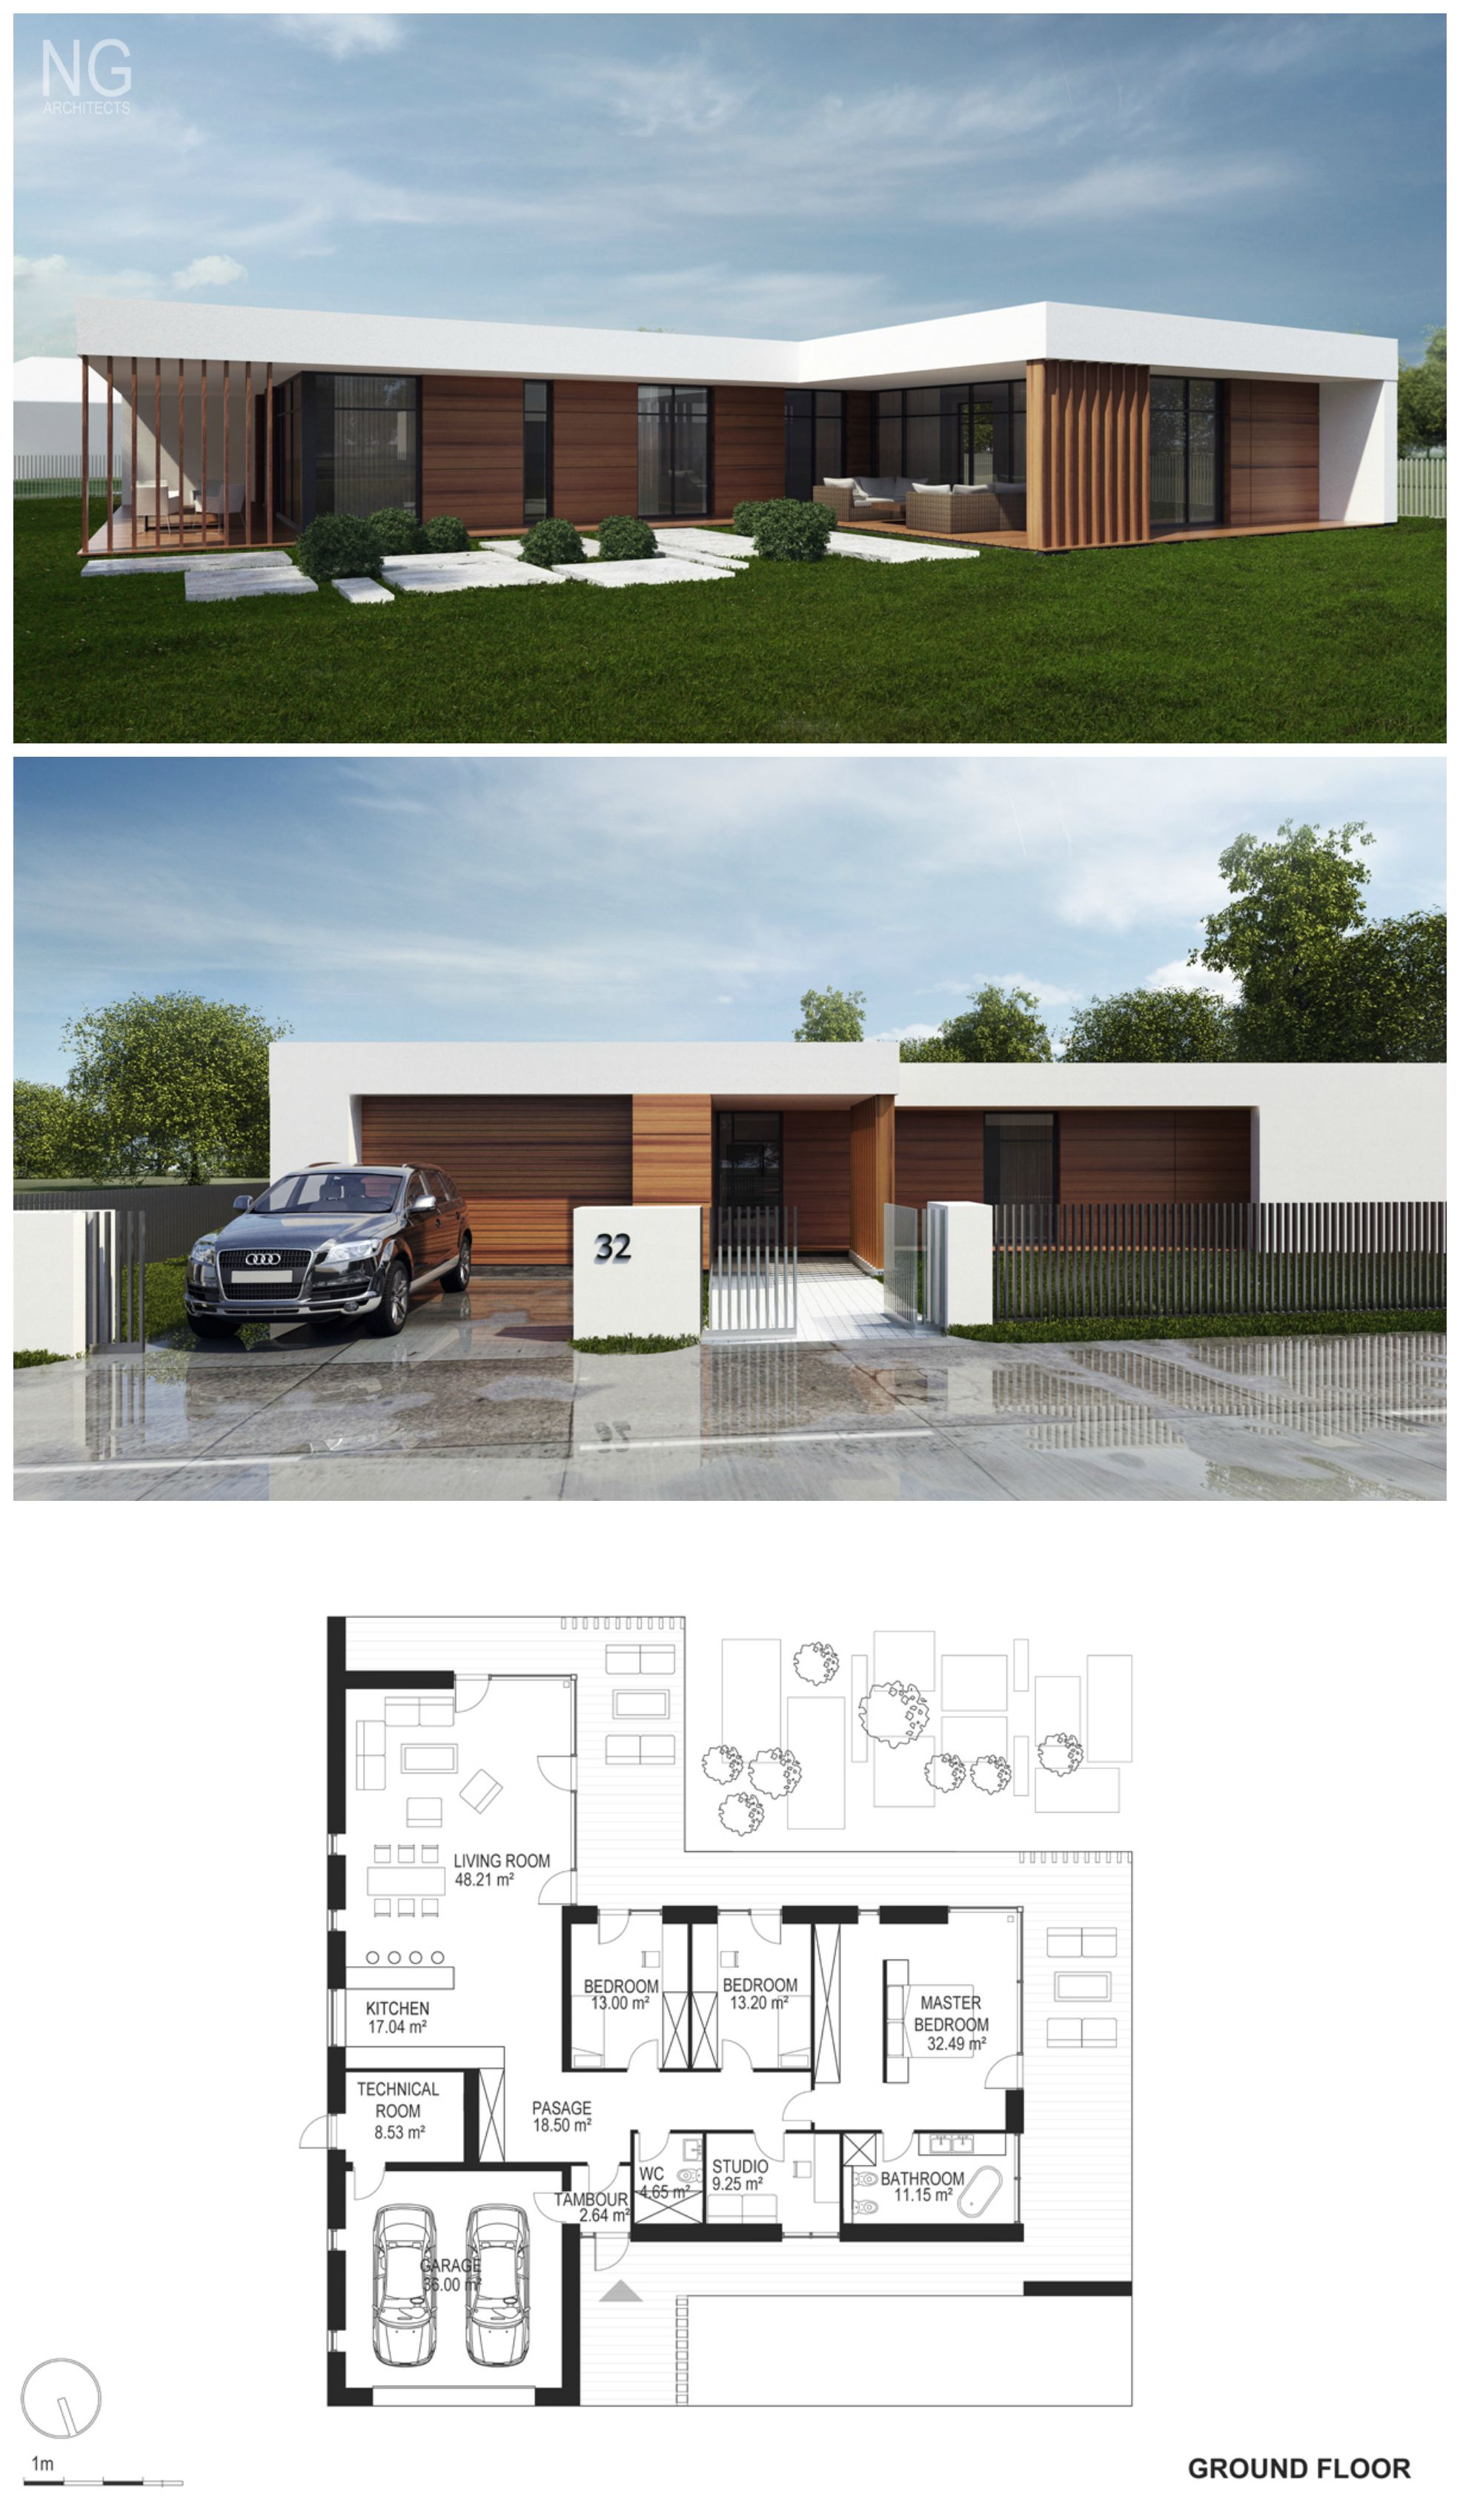 Modern 240 m2 house designed by ng architects modern bungalow house plans bungalow homes plans